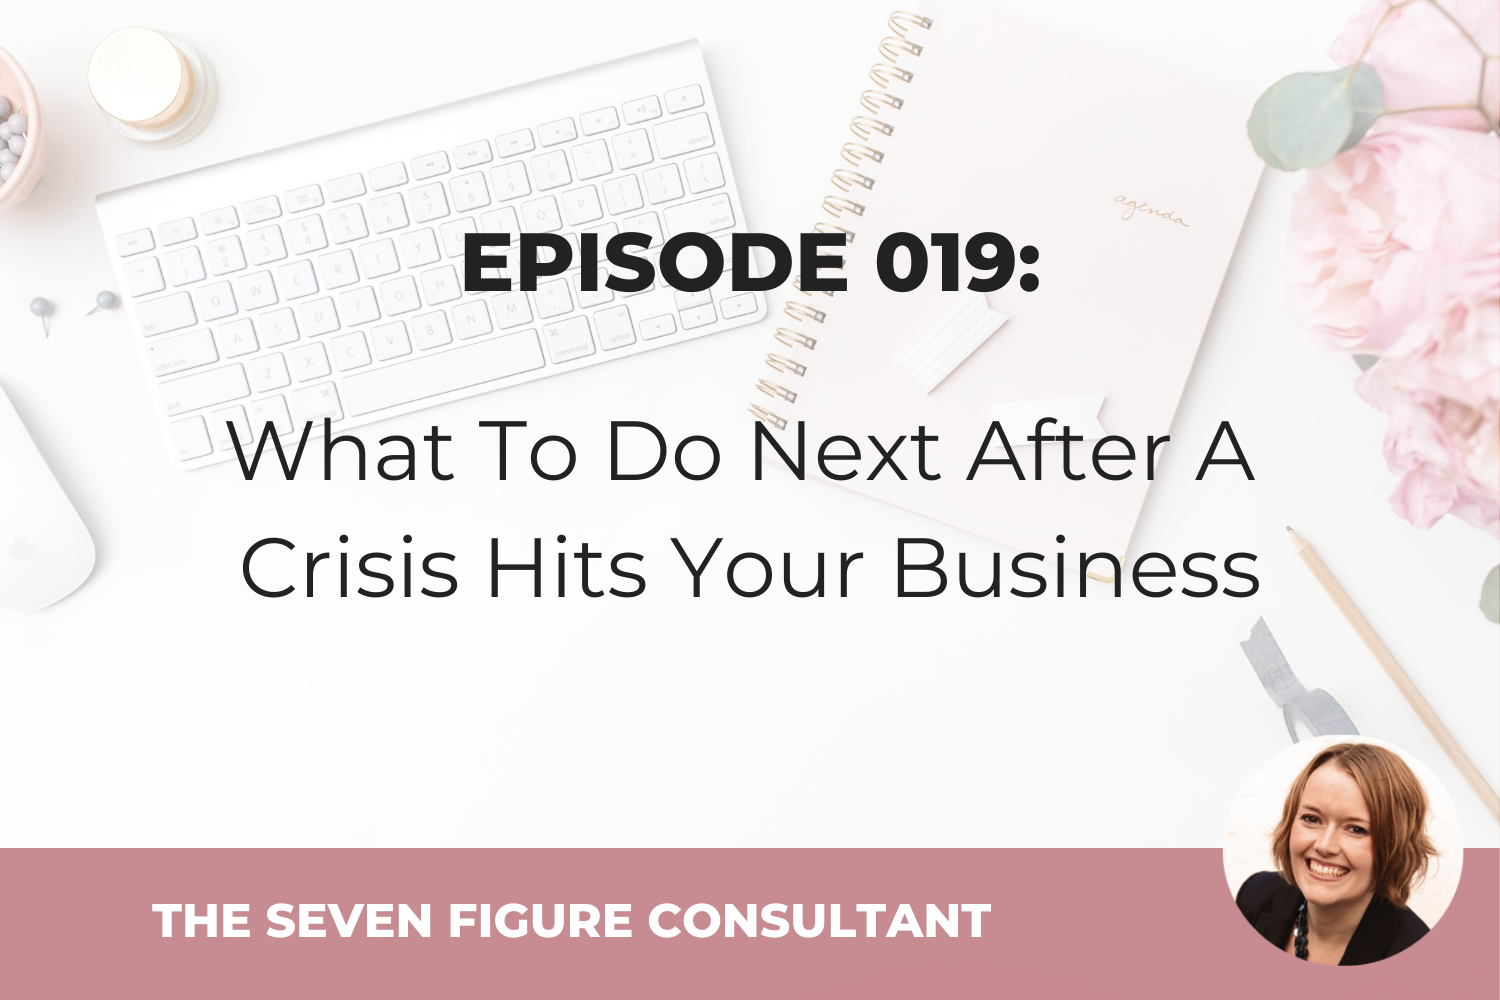 Episode 019: What To Do Next After A Crisis Hits Your Business